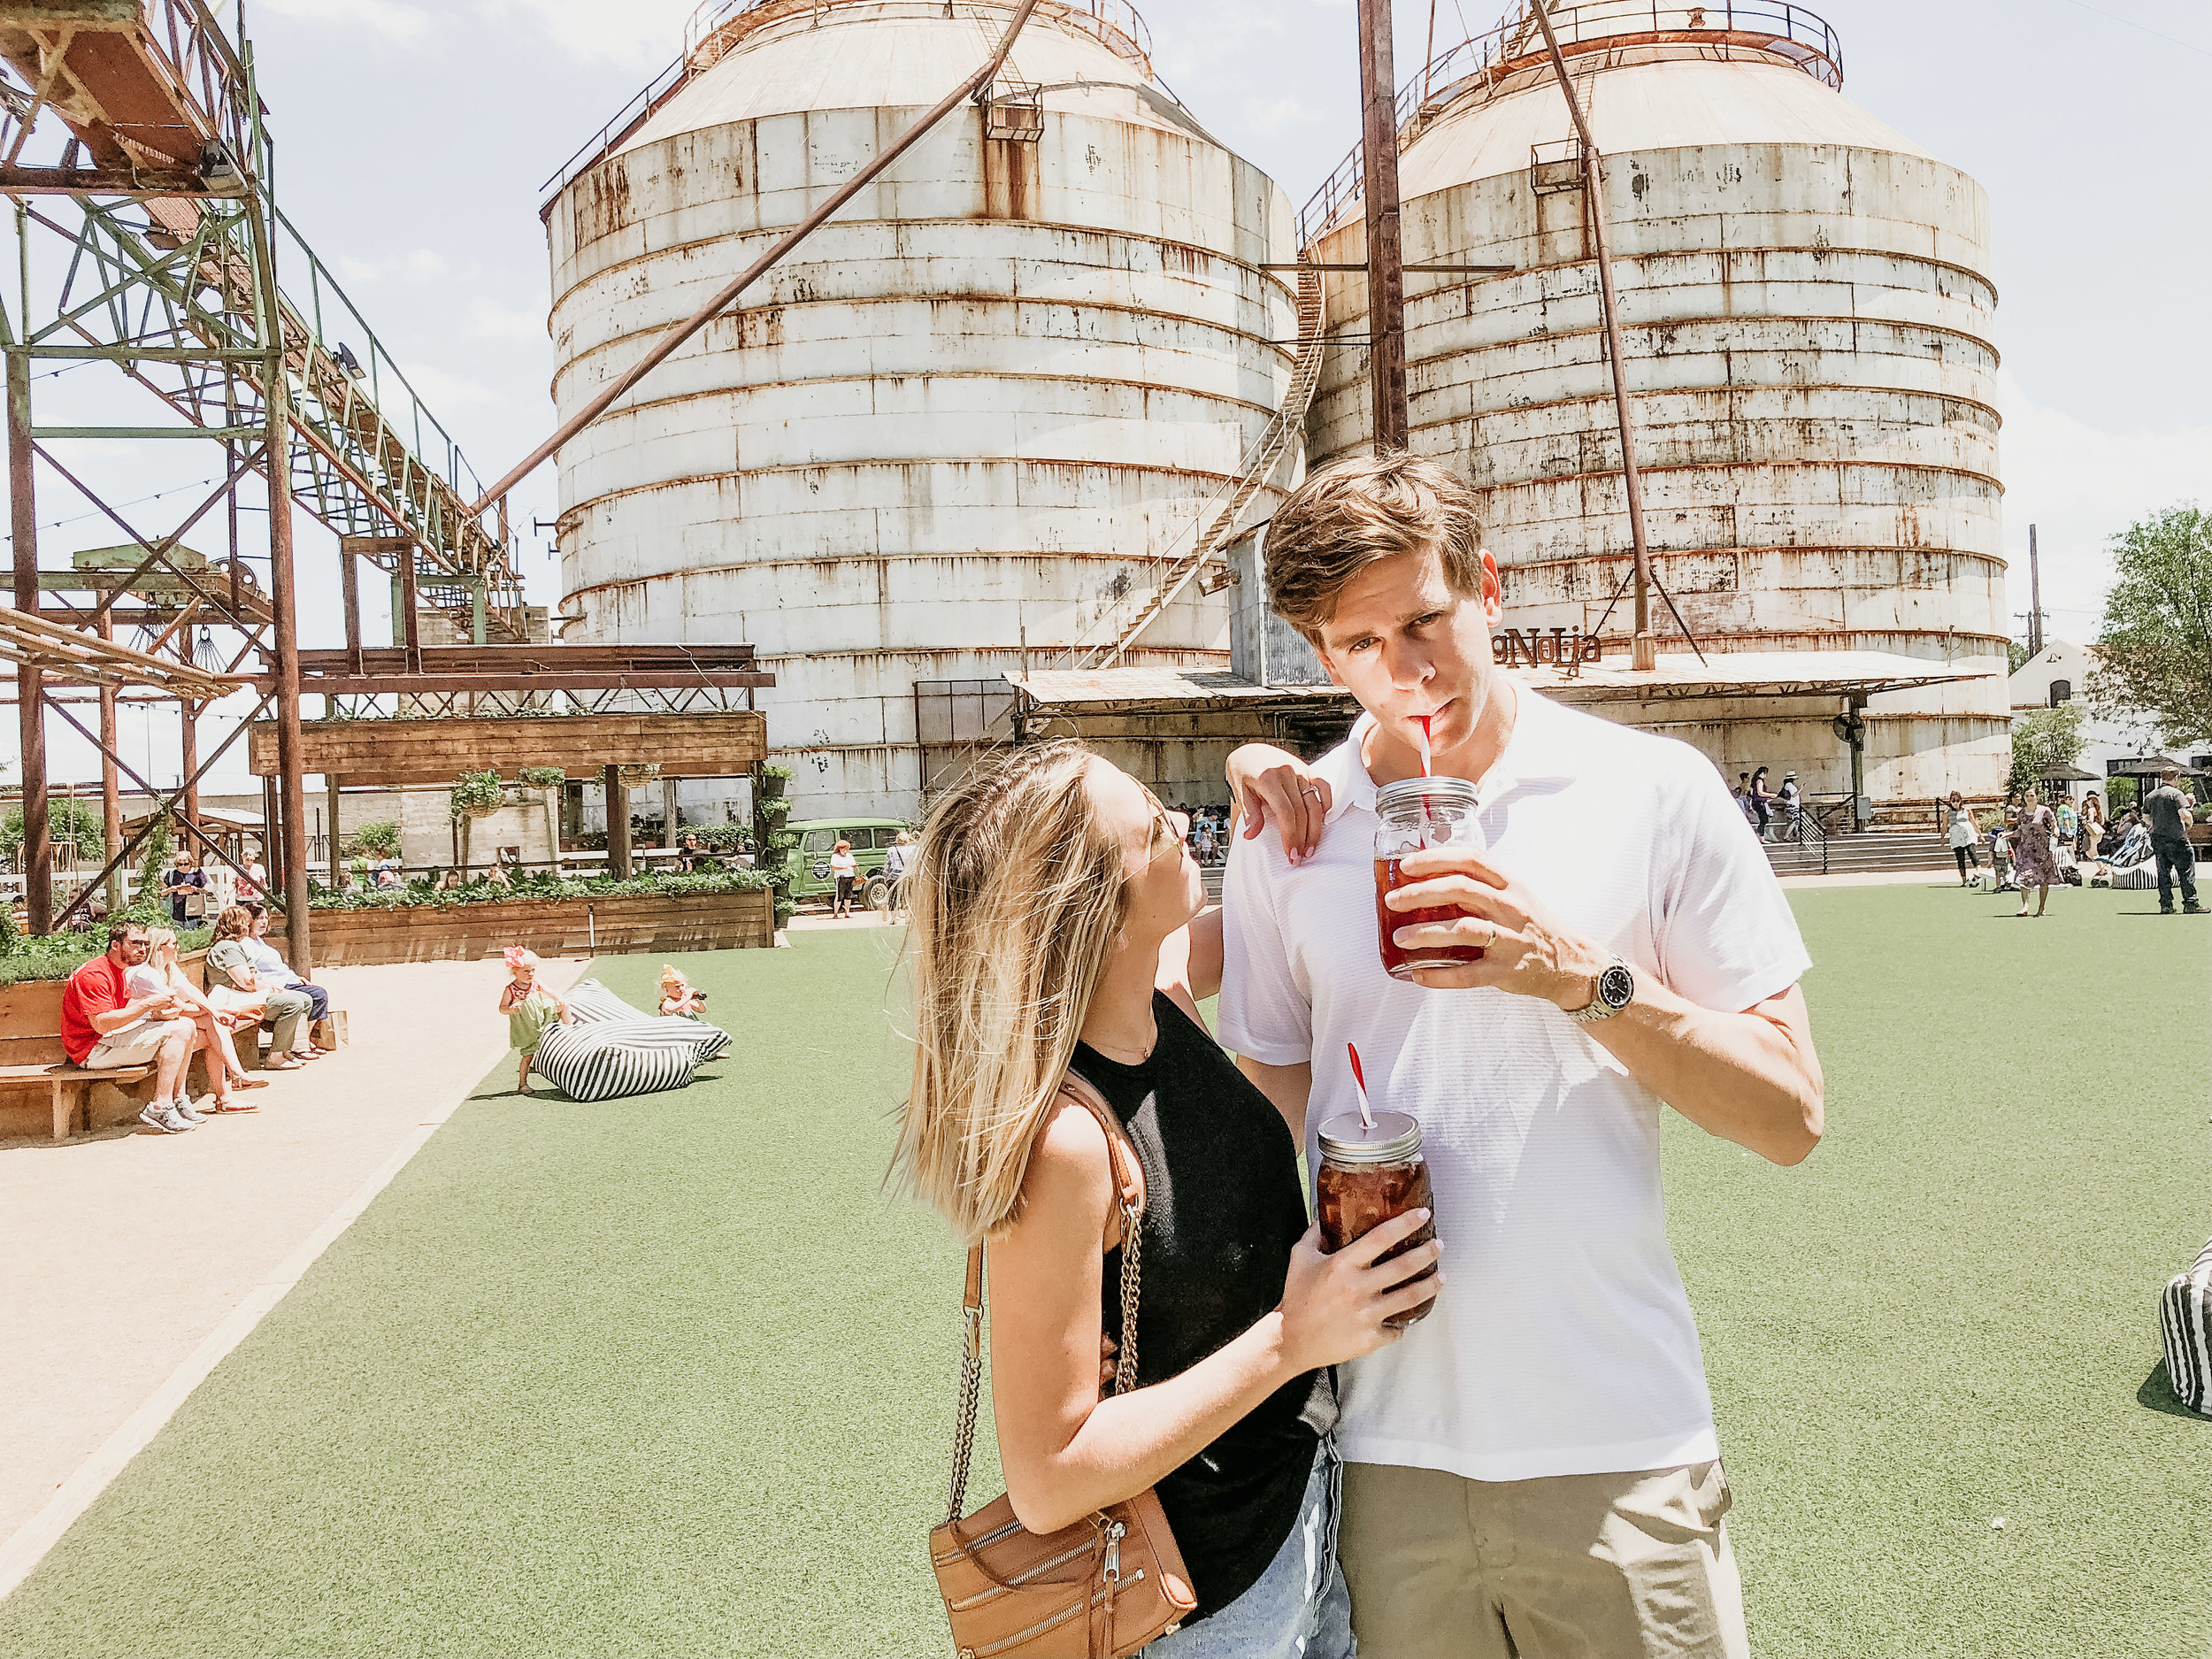 The Silos - food trucks, sun, and shopping